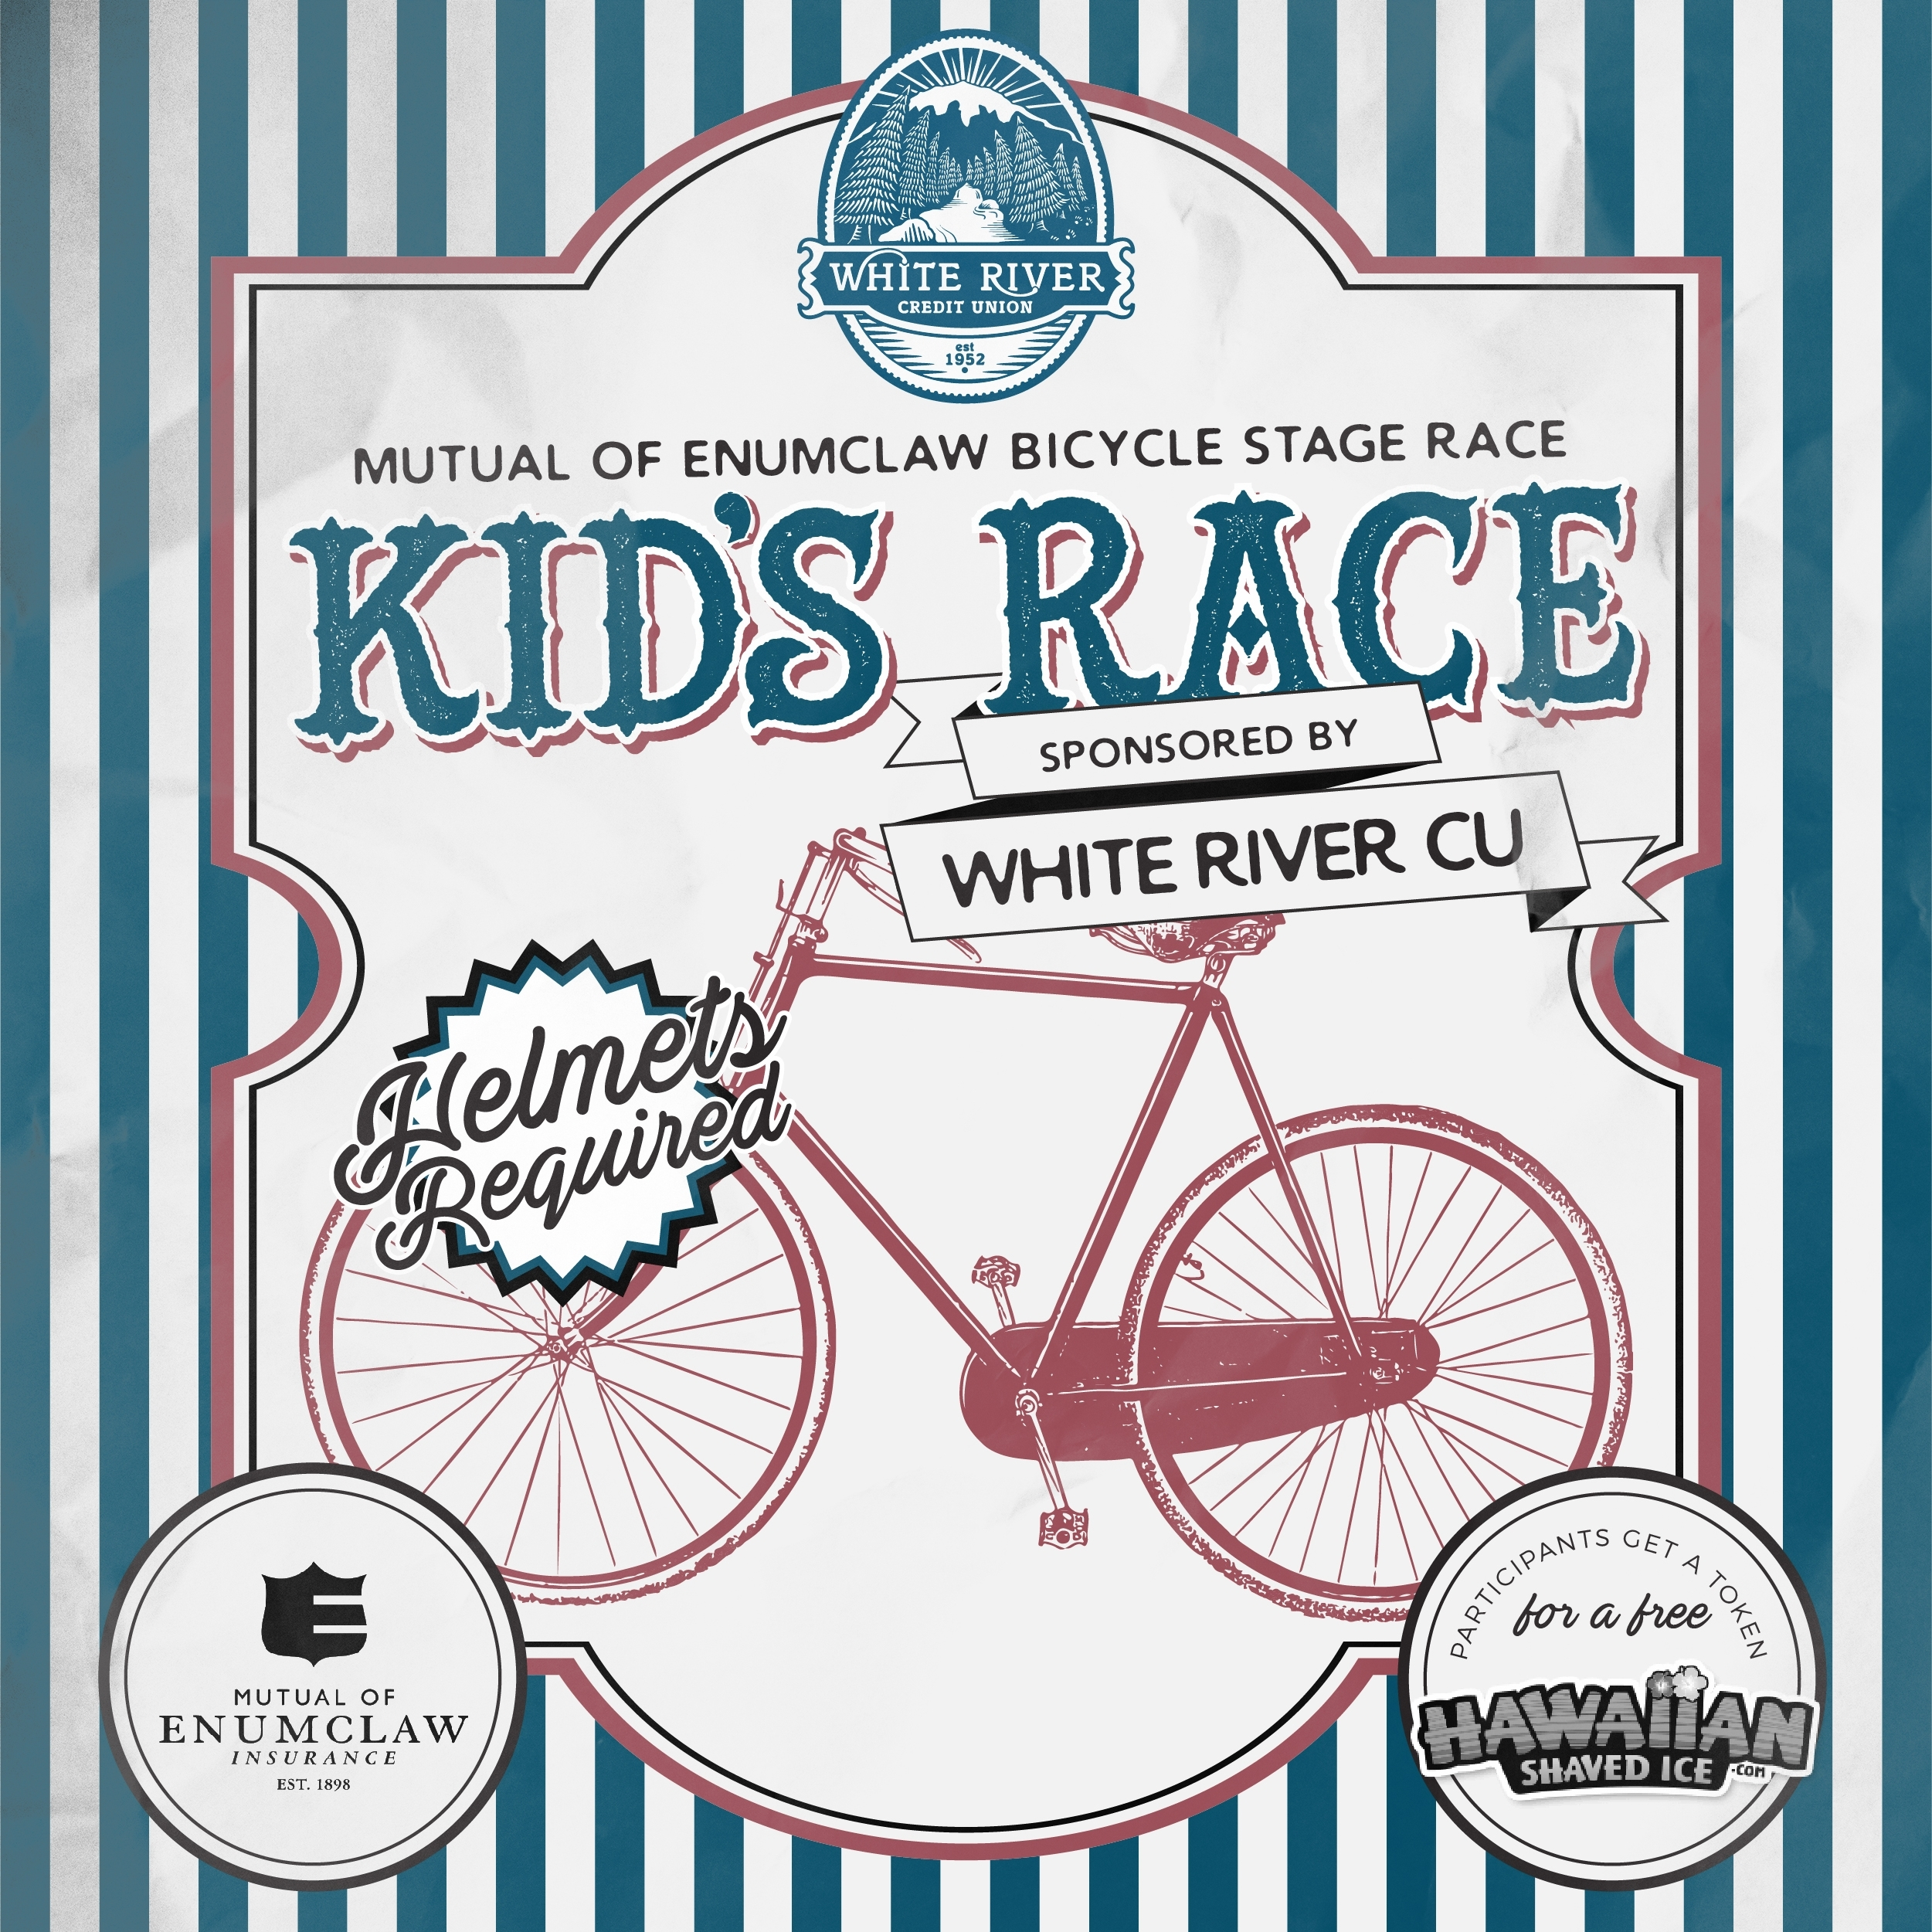 Mutual of Enumclaw Bicycle Stage Race: Kid's Race sponsored by WRCU